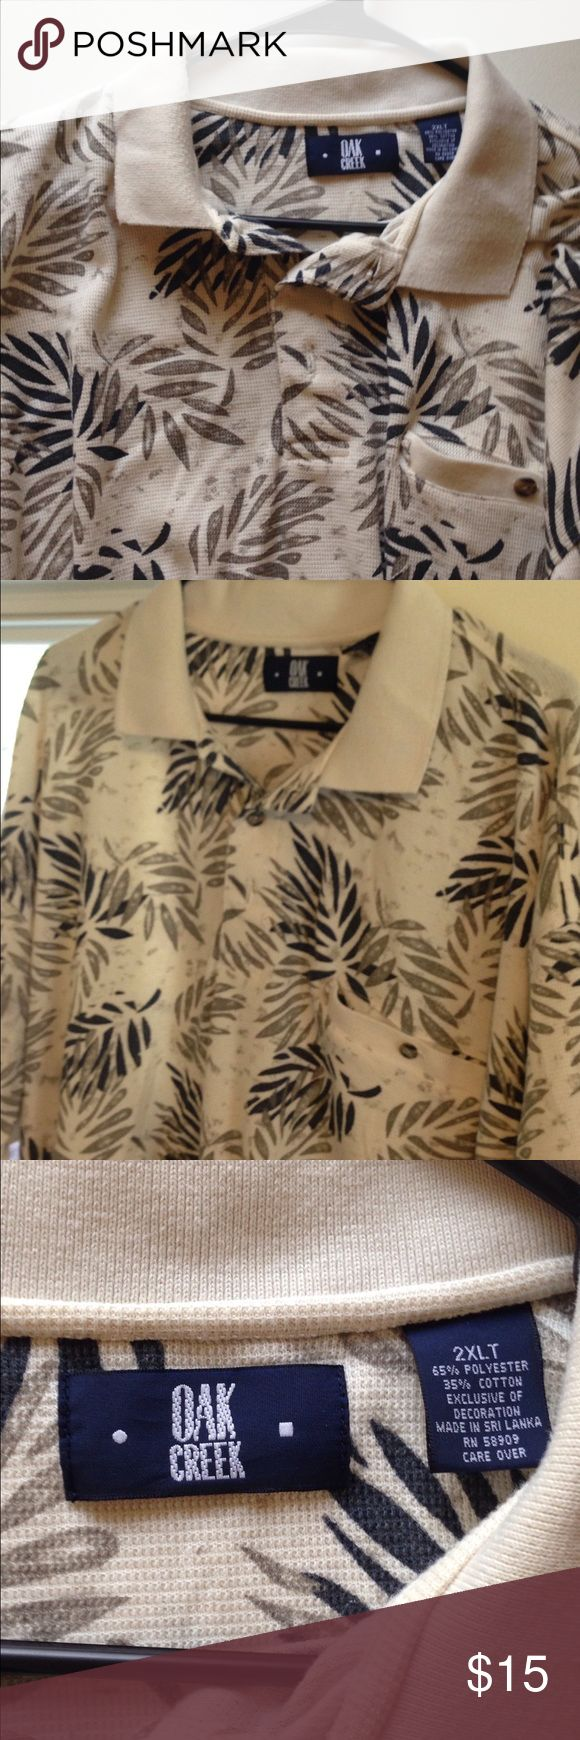 2XL Leaf Print Oak Creek Men's Polo Shirt This Oak Creek polo shirt is in great used condition! It features a printed design and is a size 2XL Oak Creek Shirts Polos